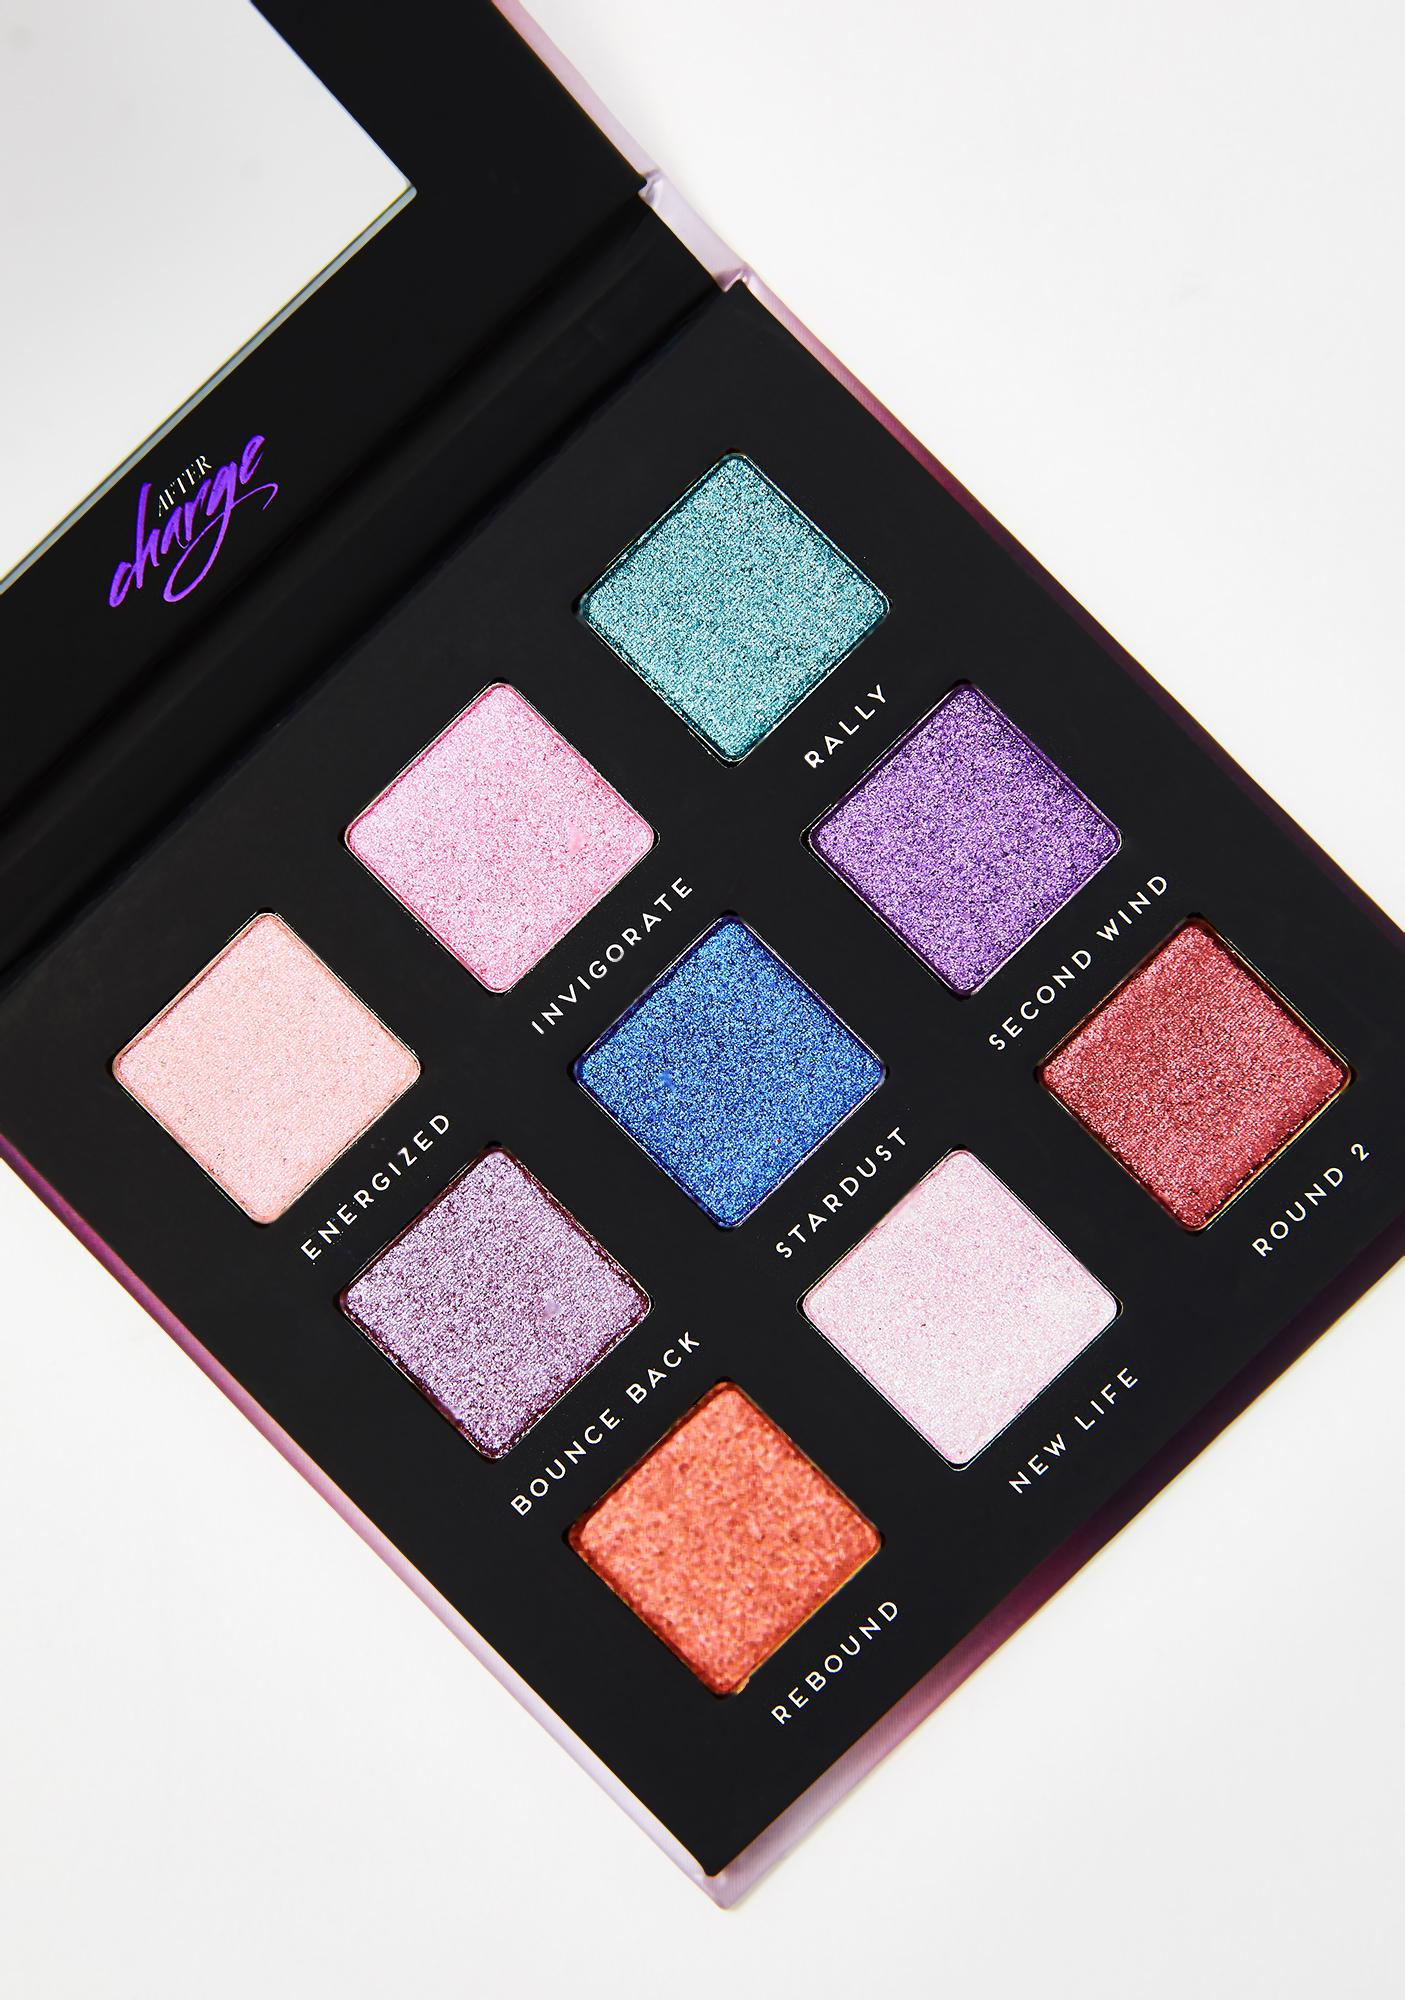 After Charge Palette by Bad Habit